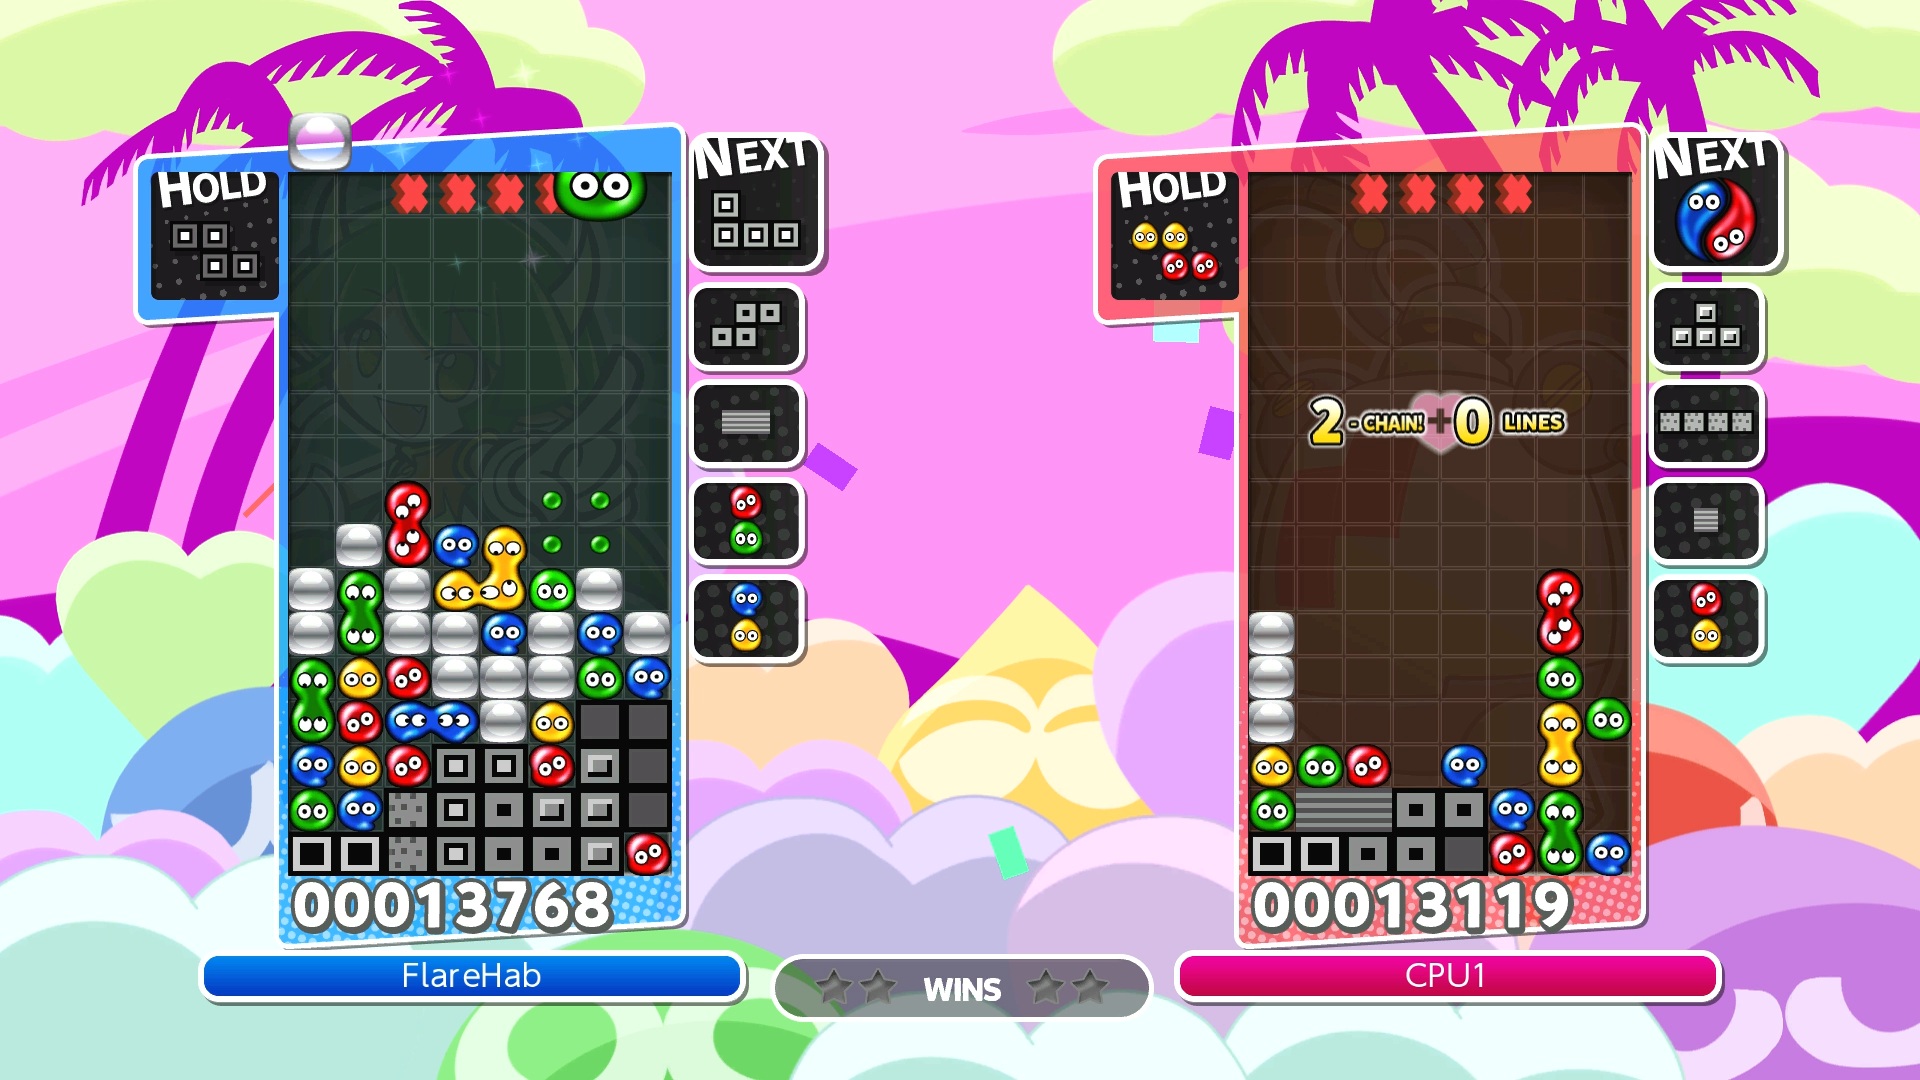 Puyo Puyo Tetris Screenshot 2017-05-03 17-37-03